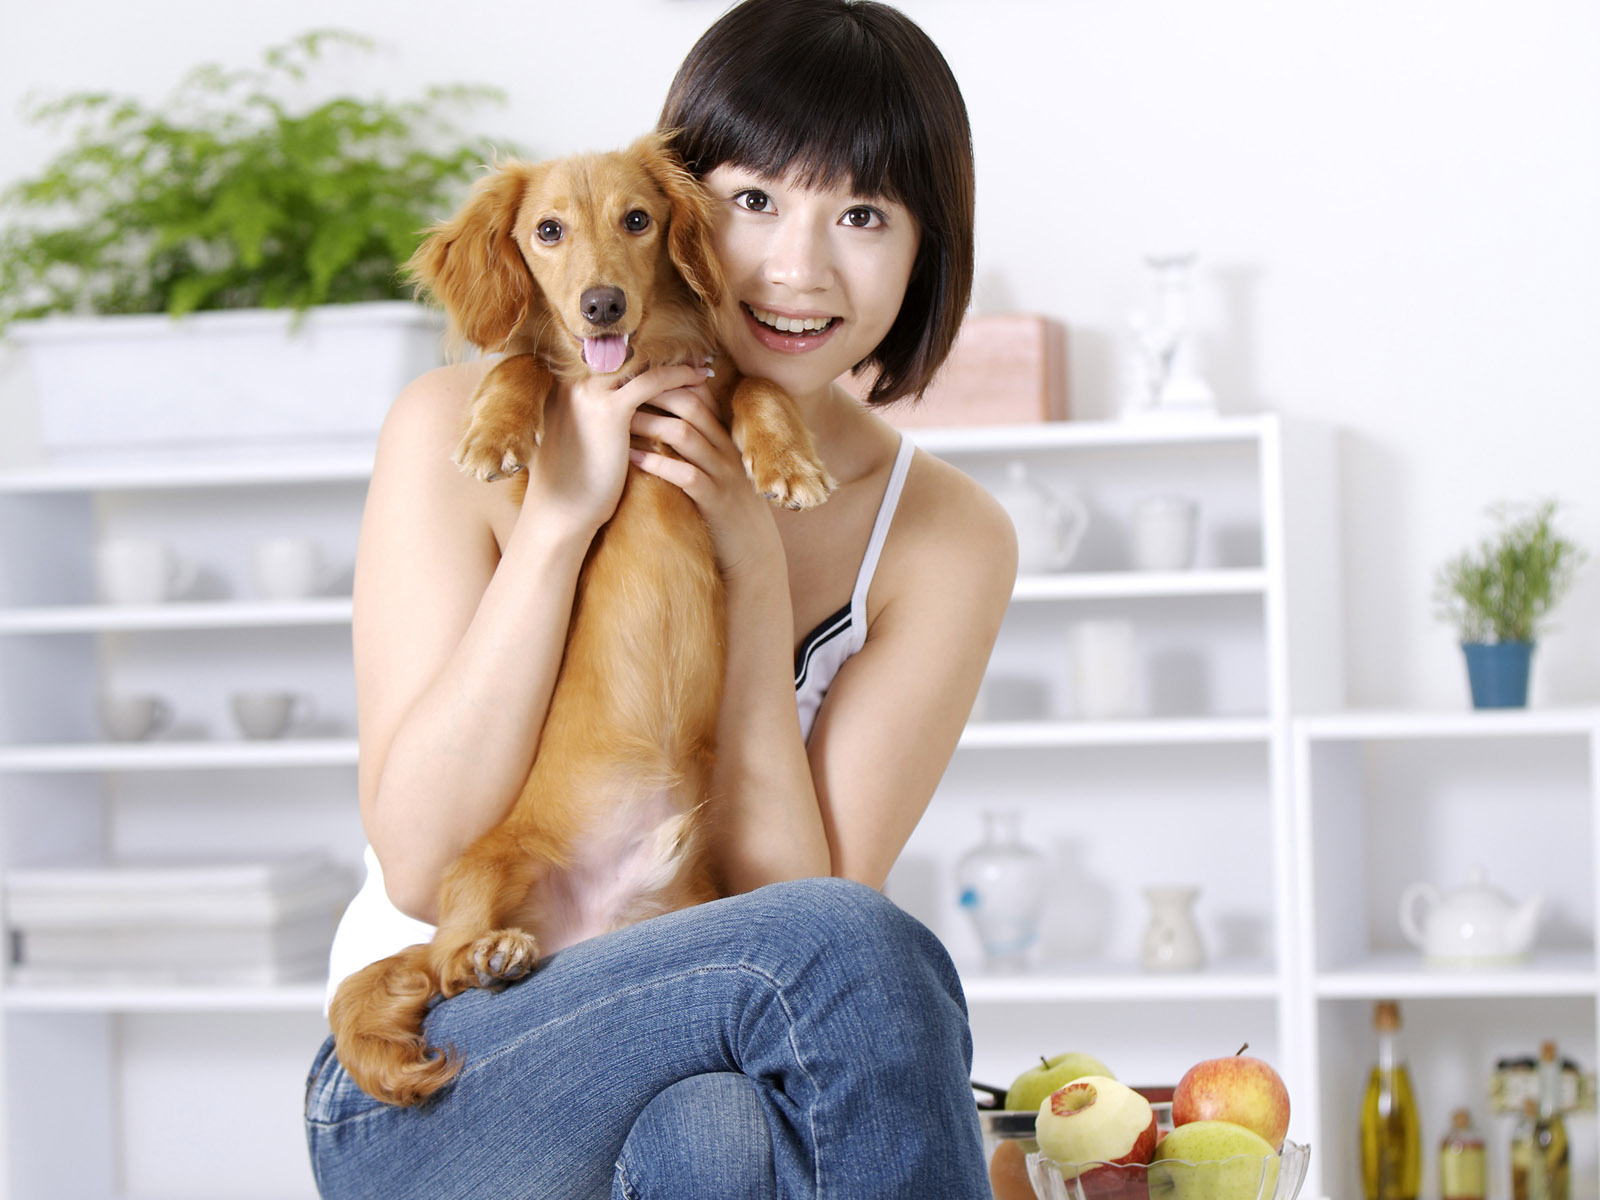 Beauty and the pets 20421